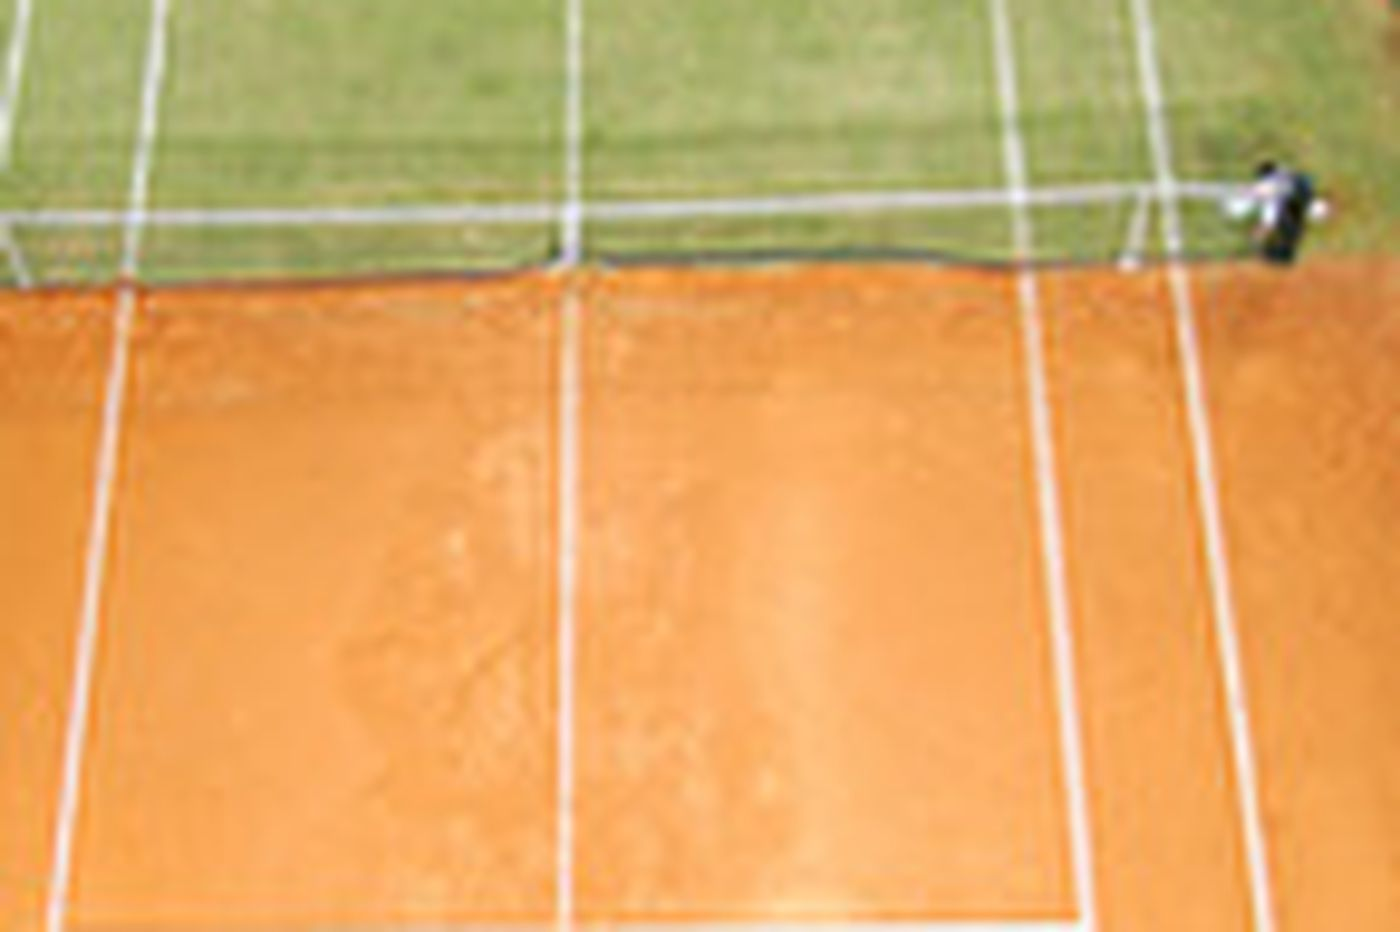 Sports in Brief | Nadal beats Federer on clay - and grass